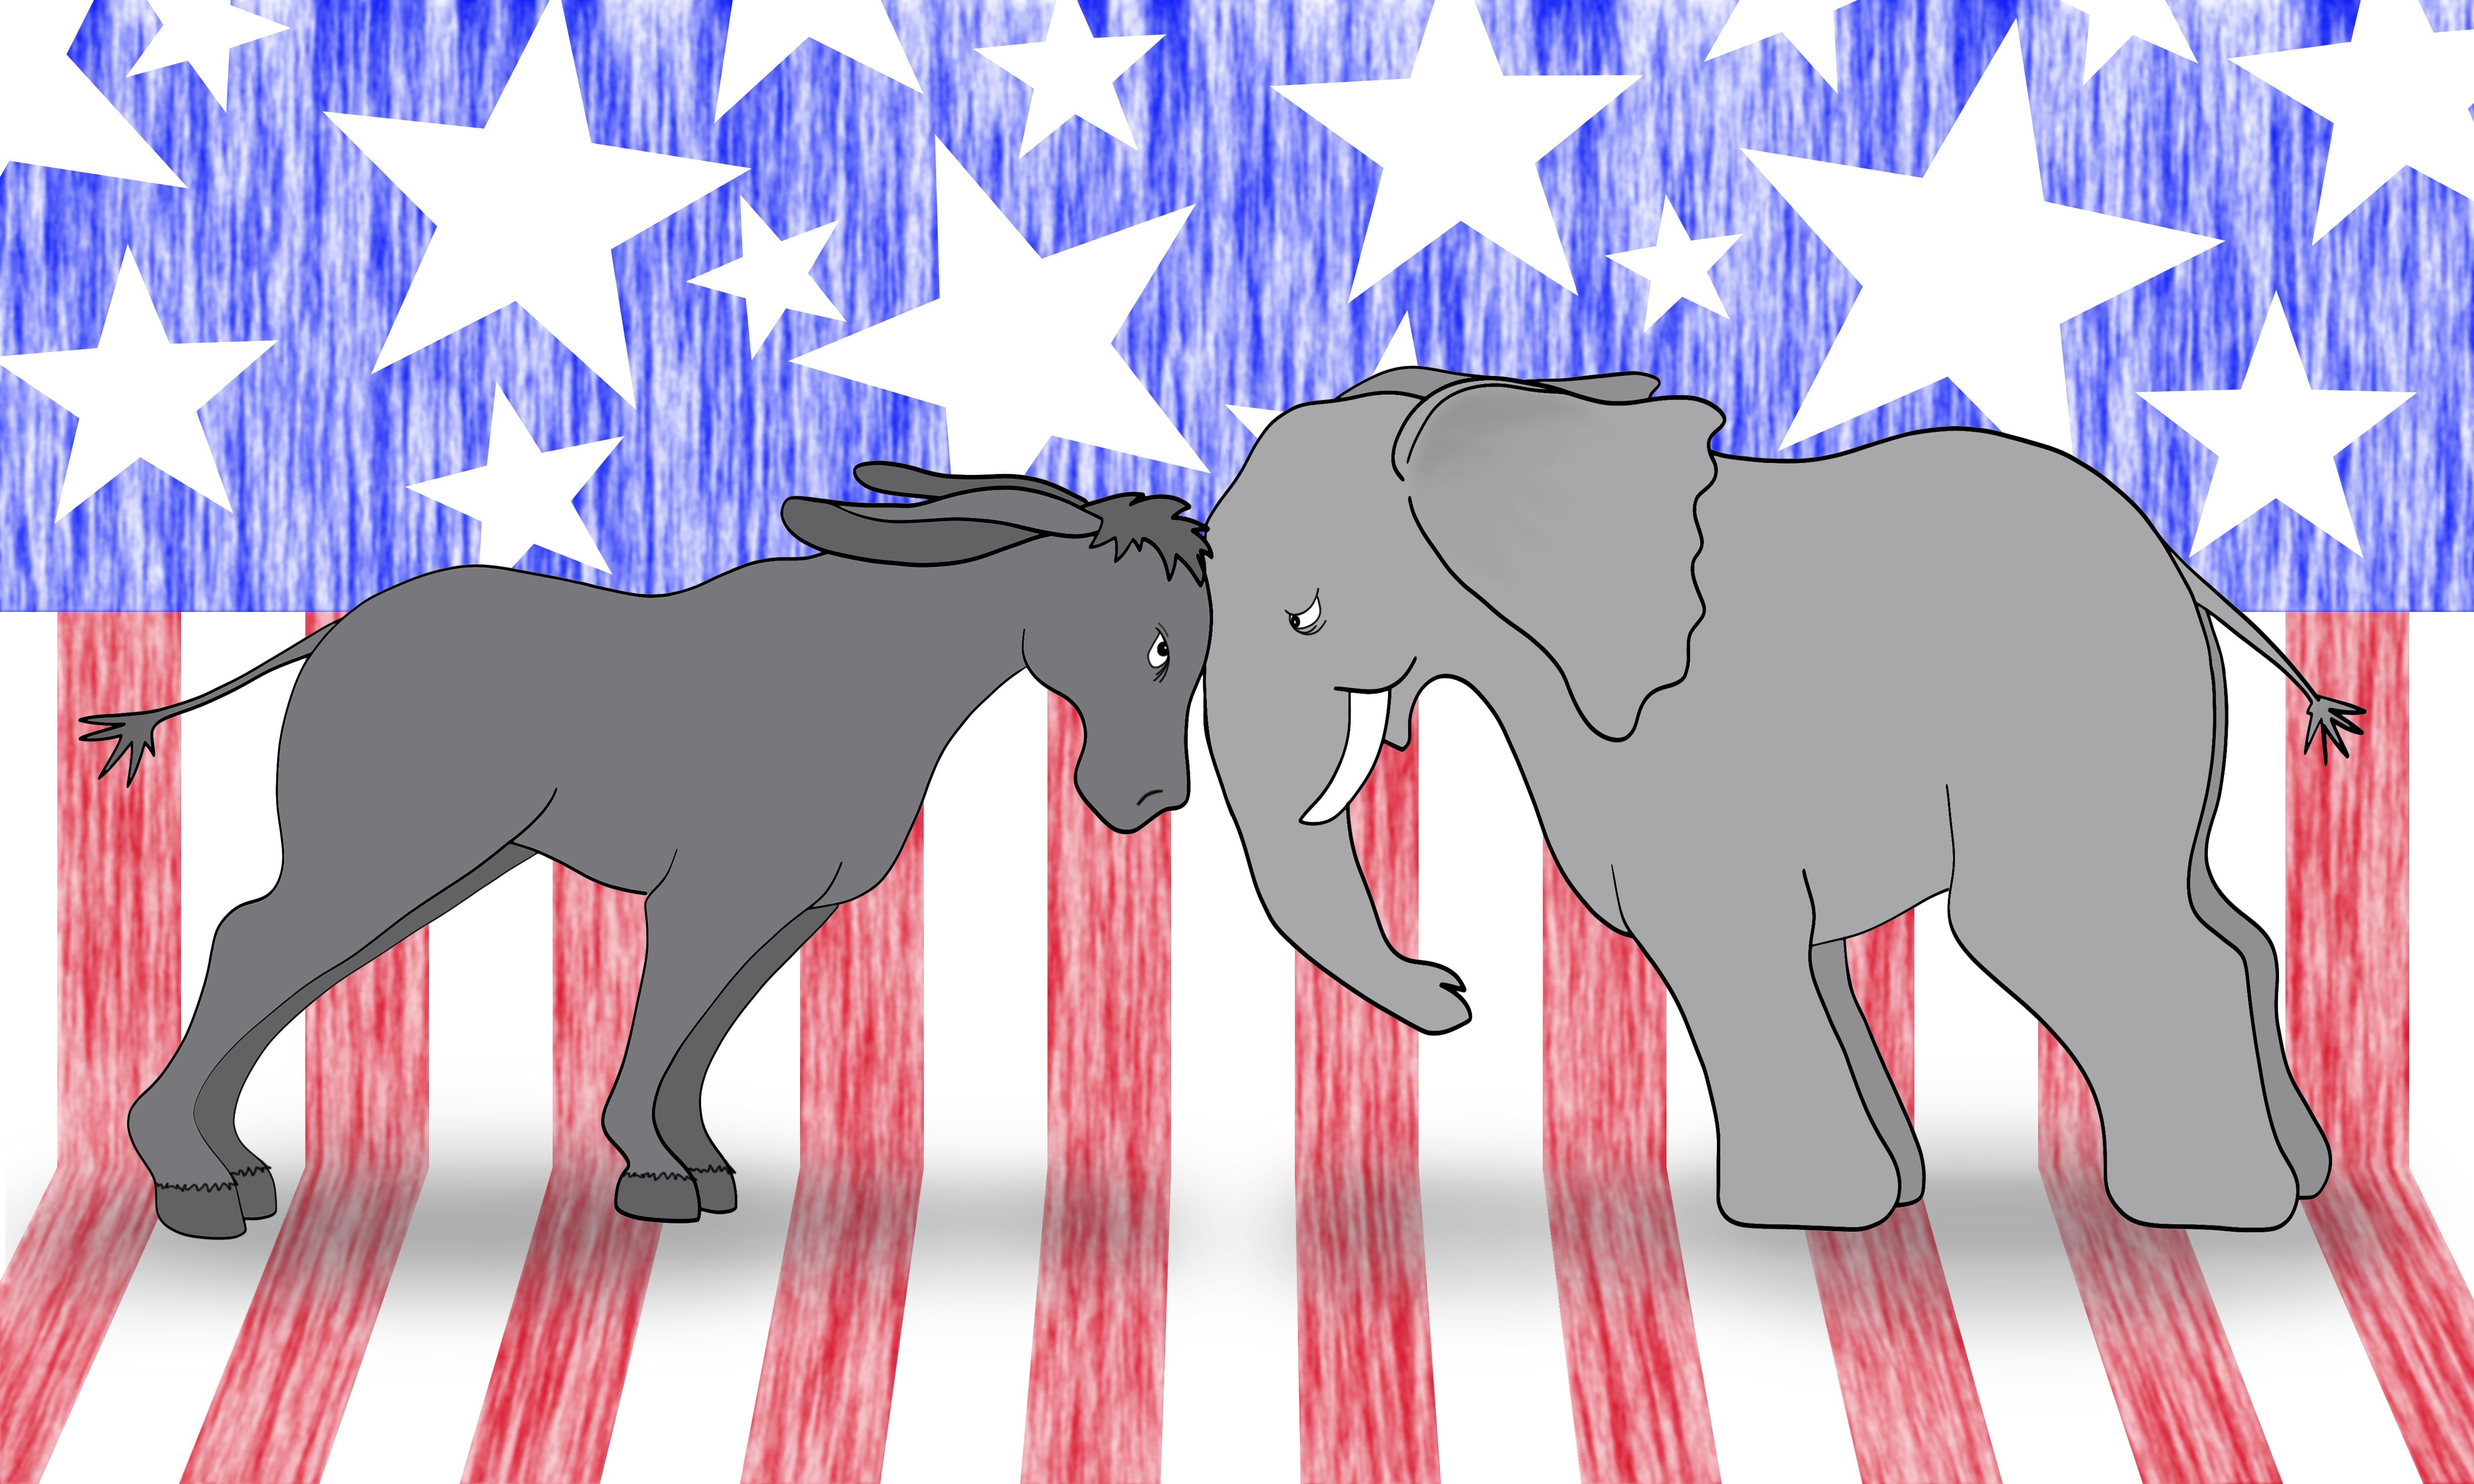 American flag with donkey and elephant representing political parties